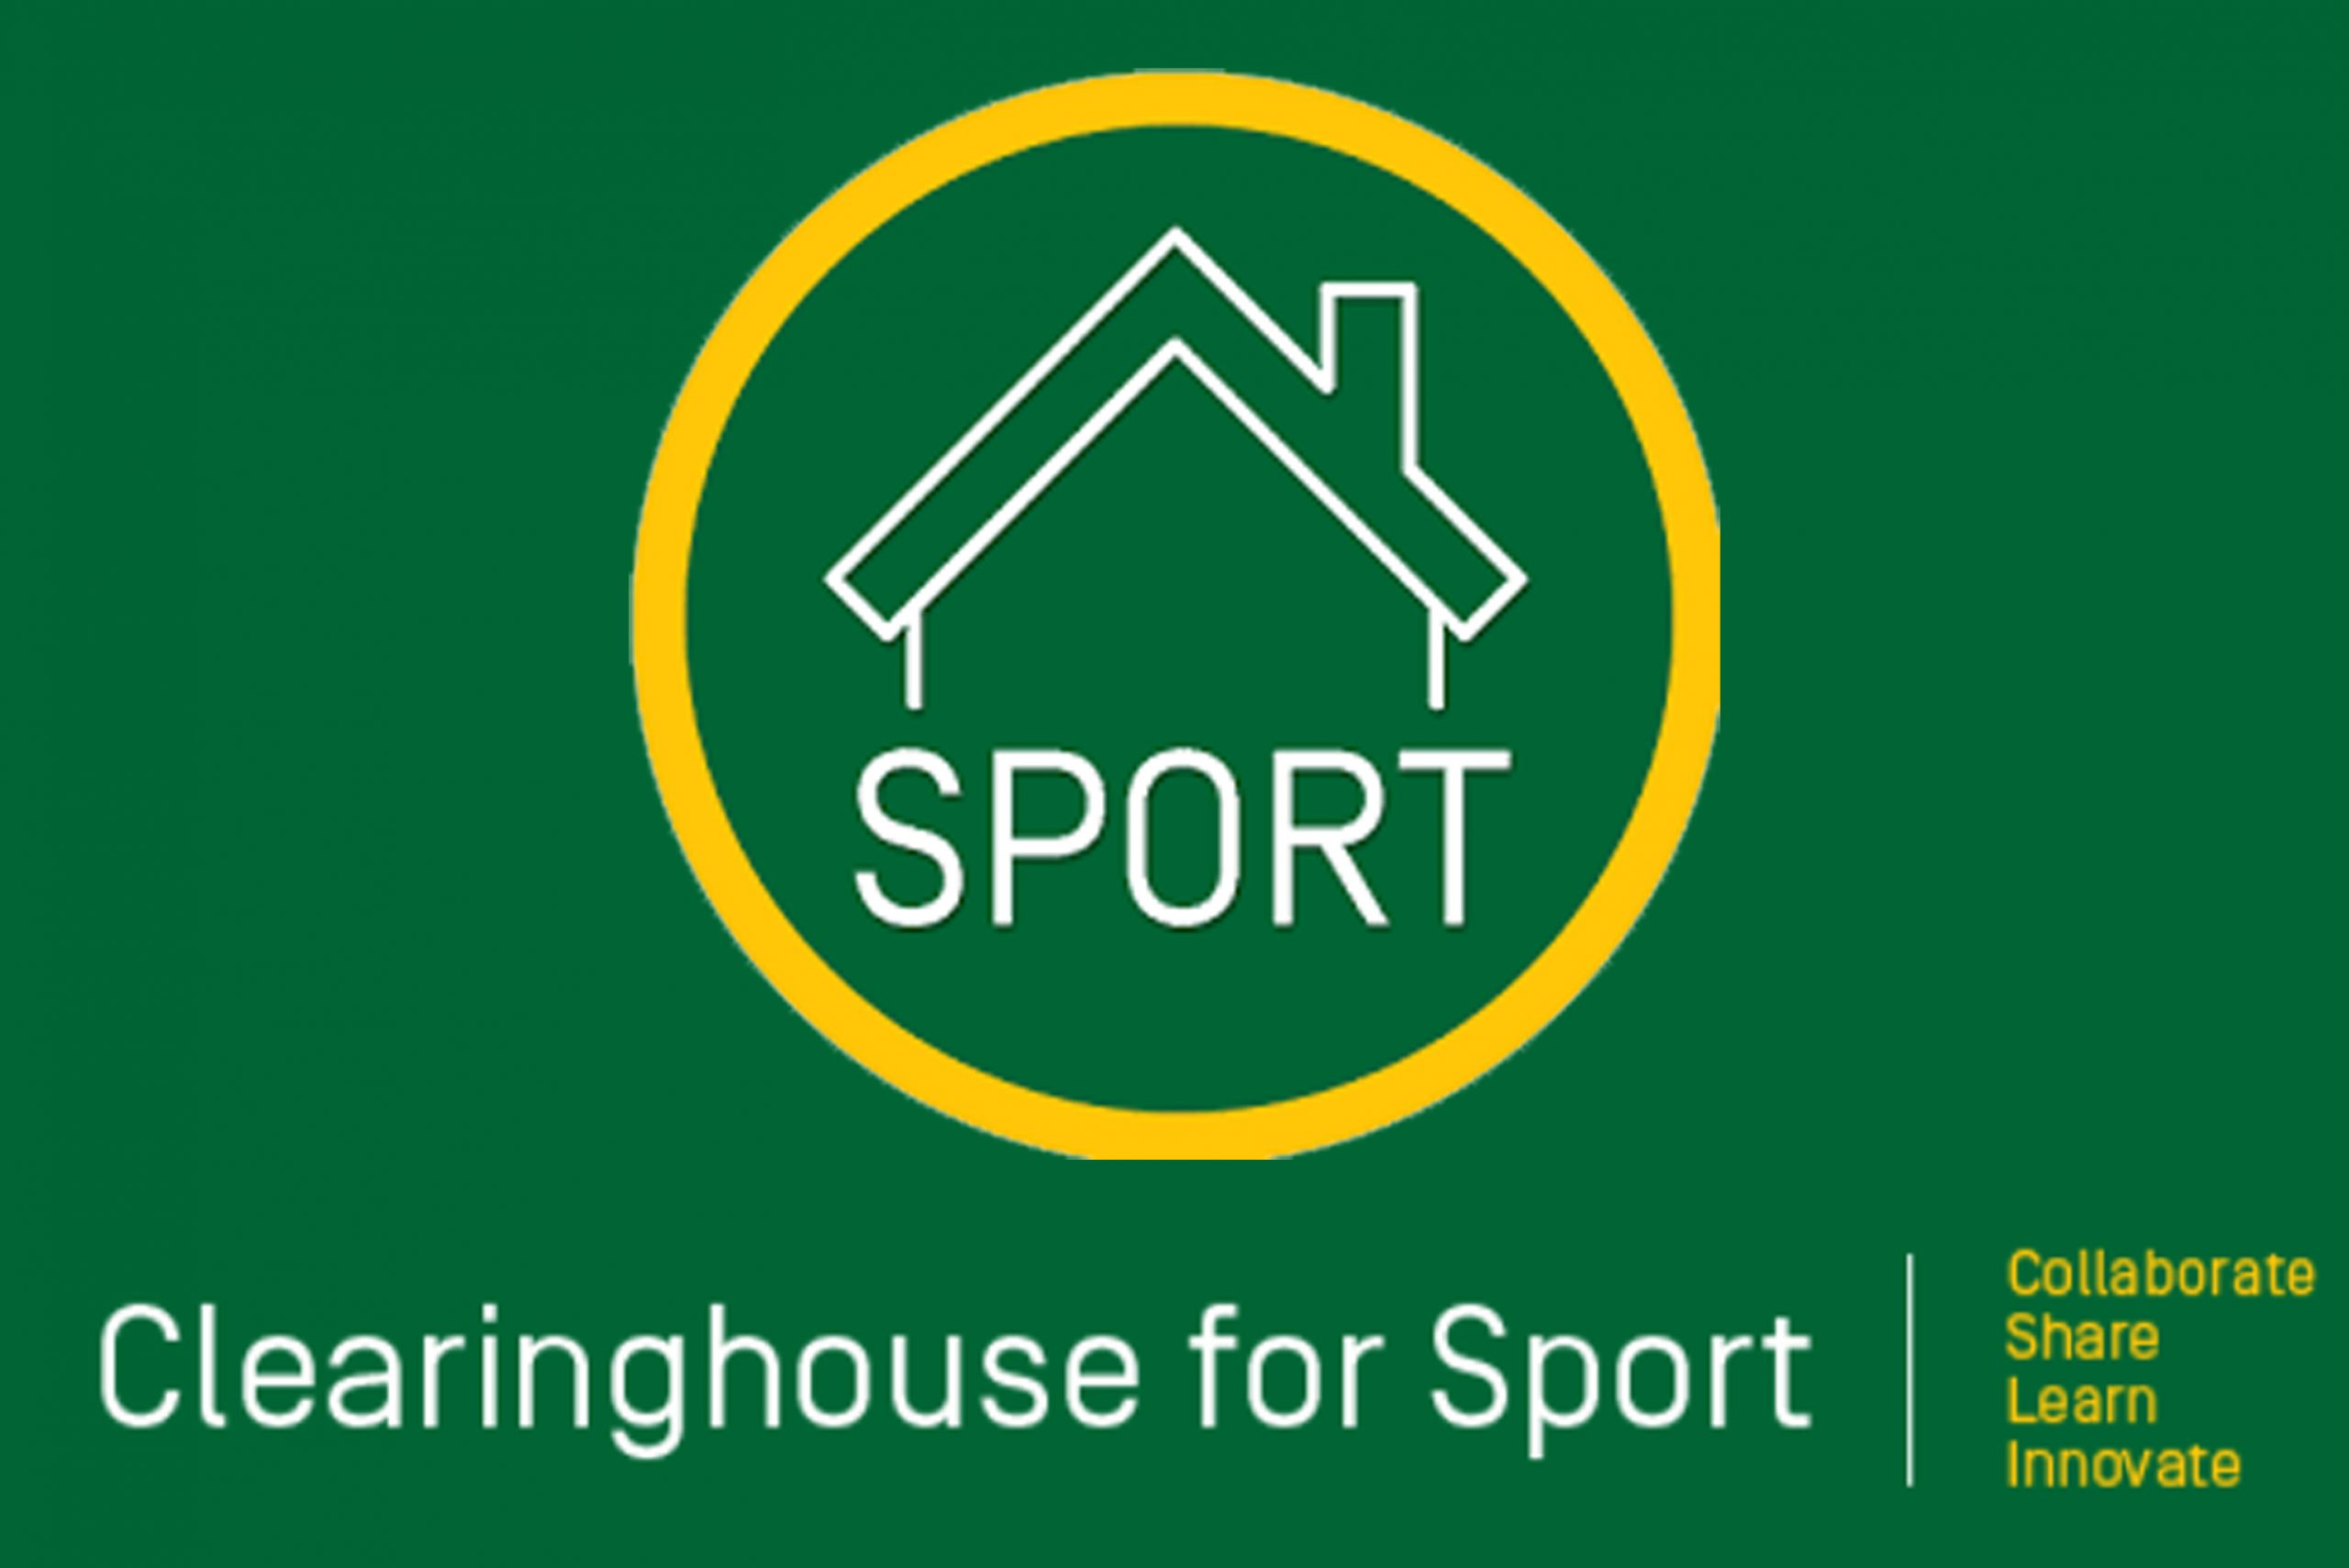 Green background with a graphic of the outline of a house with a yellow circle around it. Text underneath says Sport - Clearinghouse for Sort. Collaborate, share, learn, innovate.